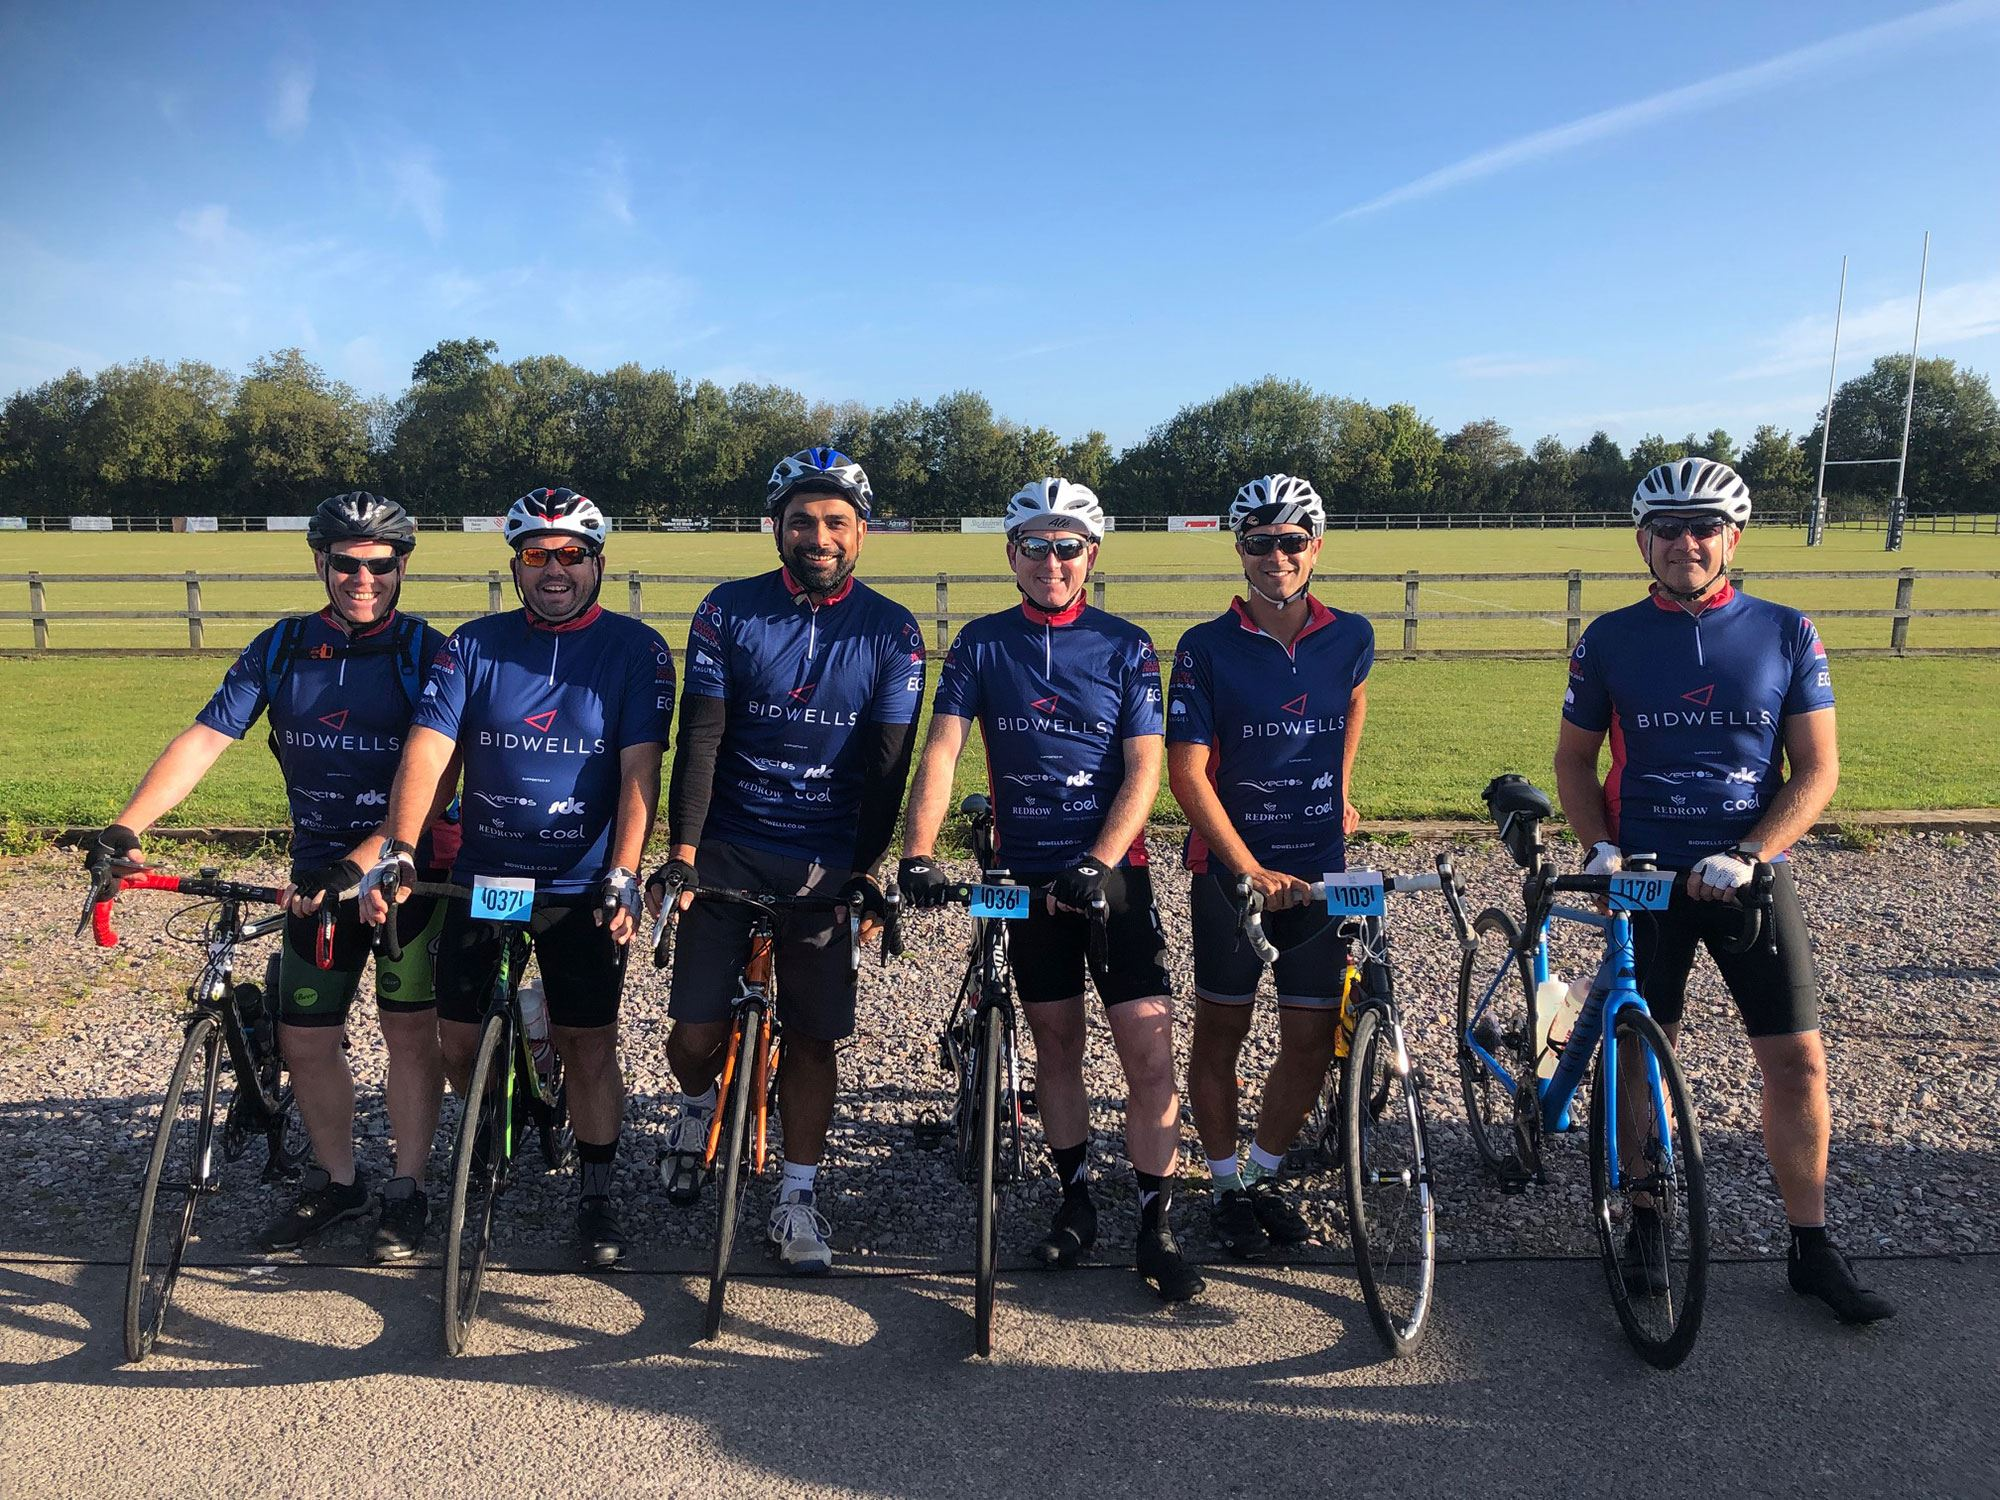 Bidwells Bike Ride 2019